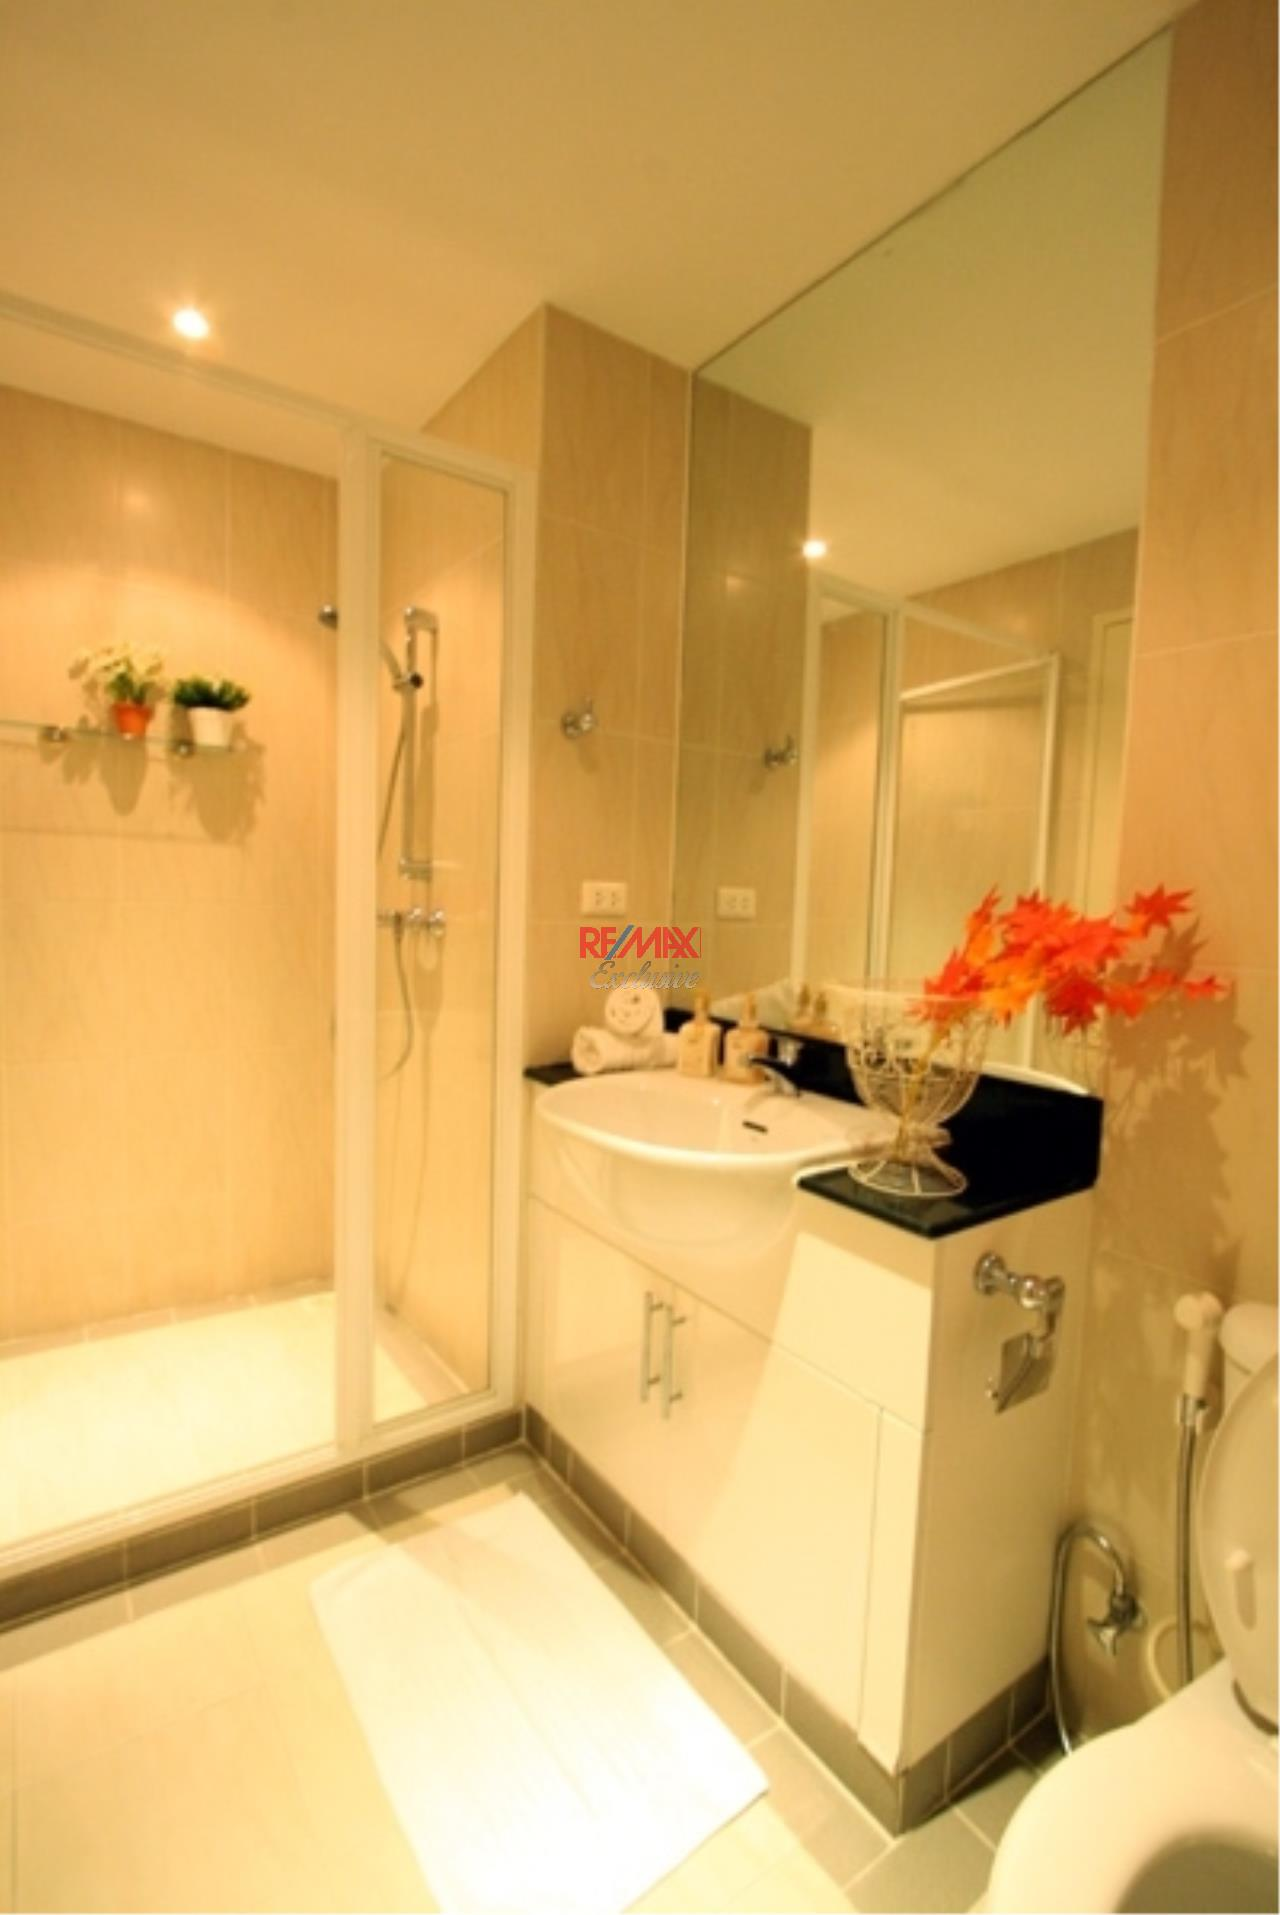 RE/MAX Exclusive Agency's 49 Plus 2 Condo 2 Bedrooms 81 Sqm For Sale 8,800,000 THB 7